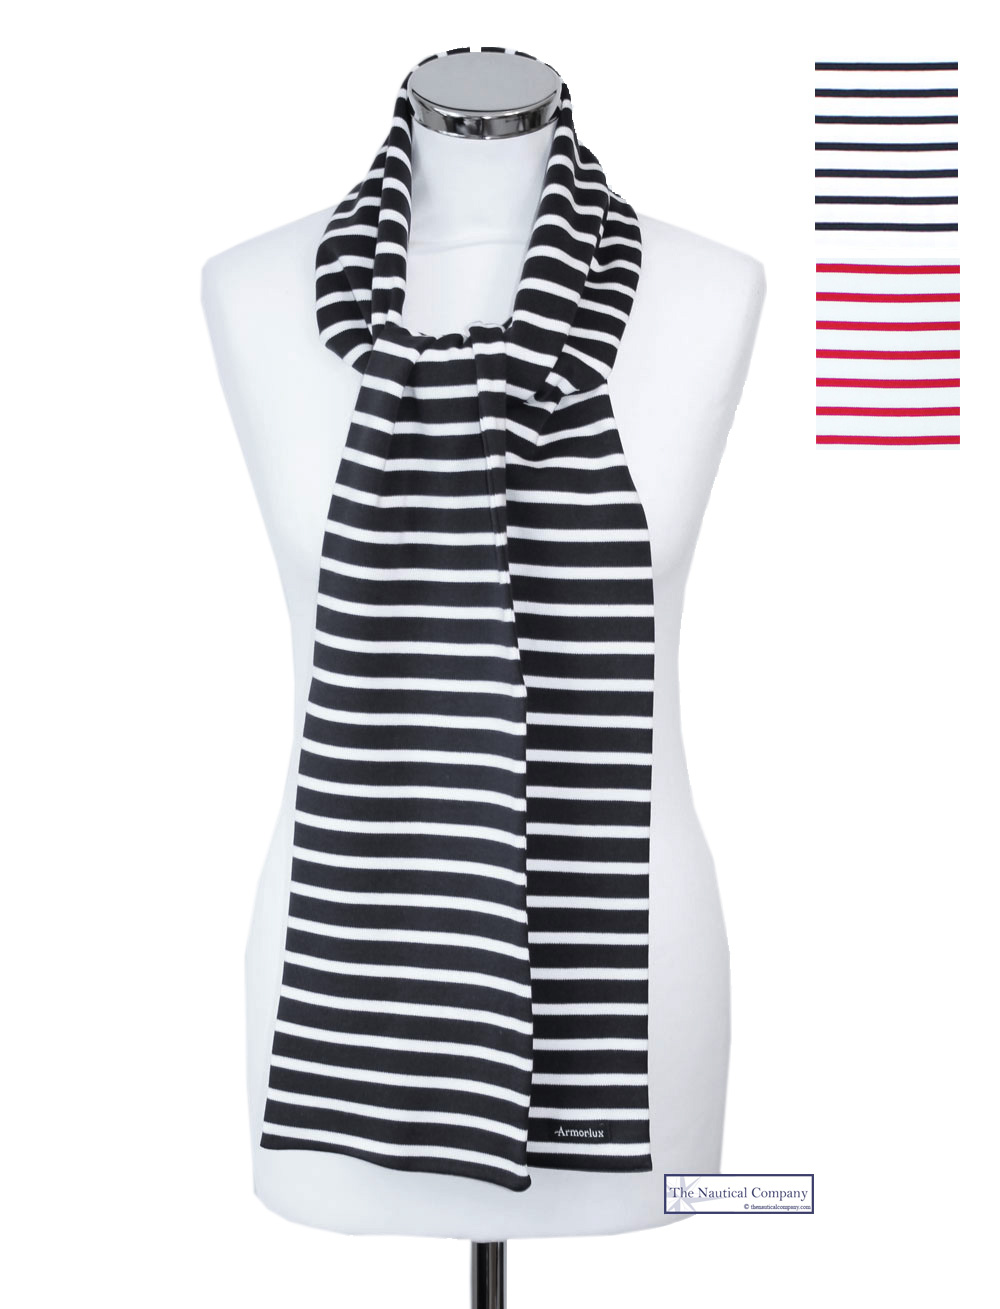 68069d0c Long Breton Cotton Striped Scarves, White/Navy, Armor Lux - THE ...